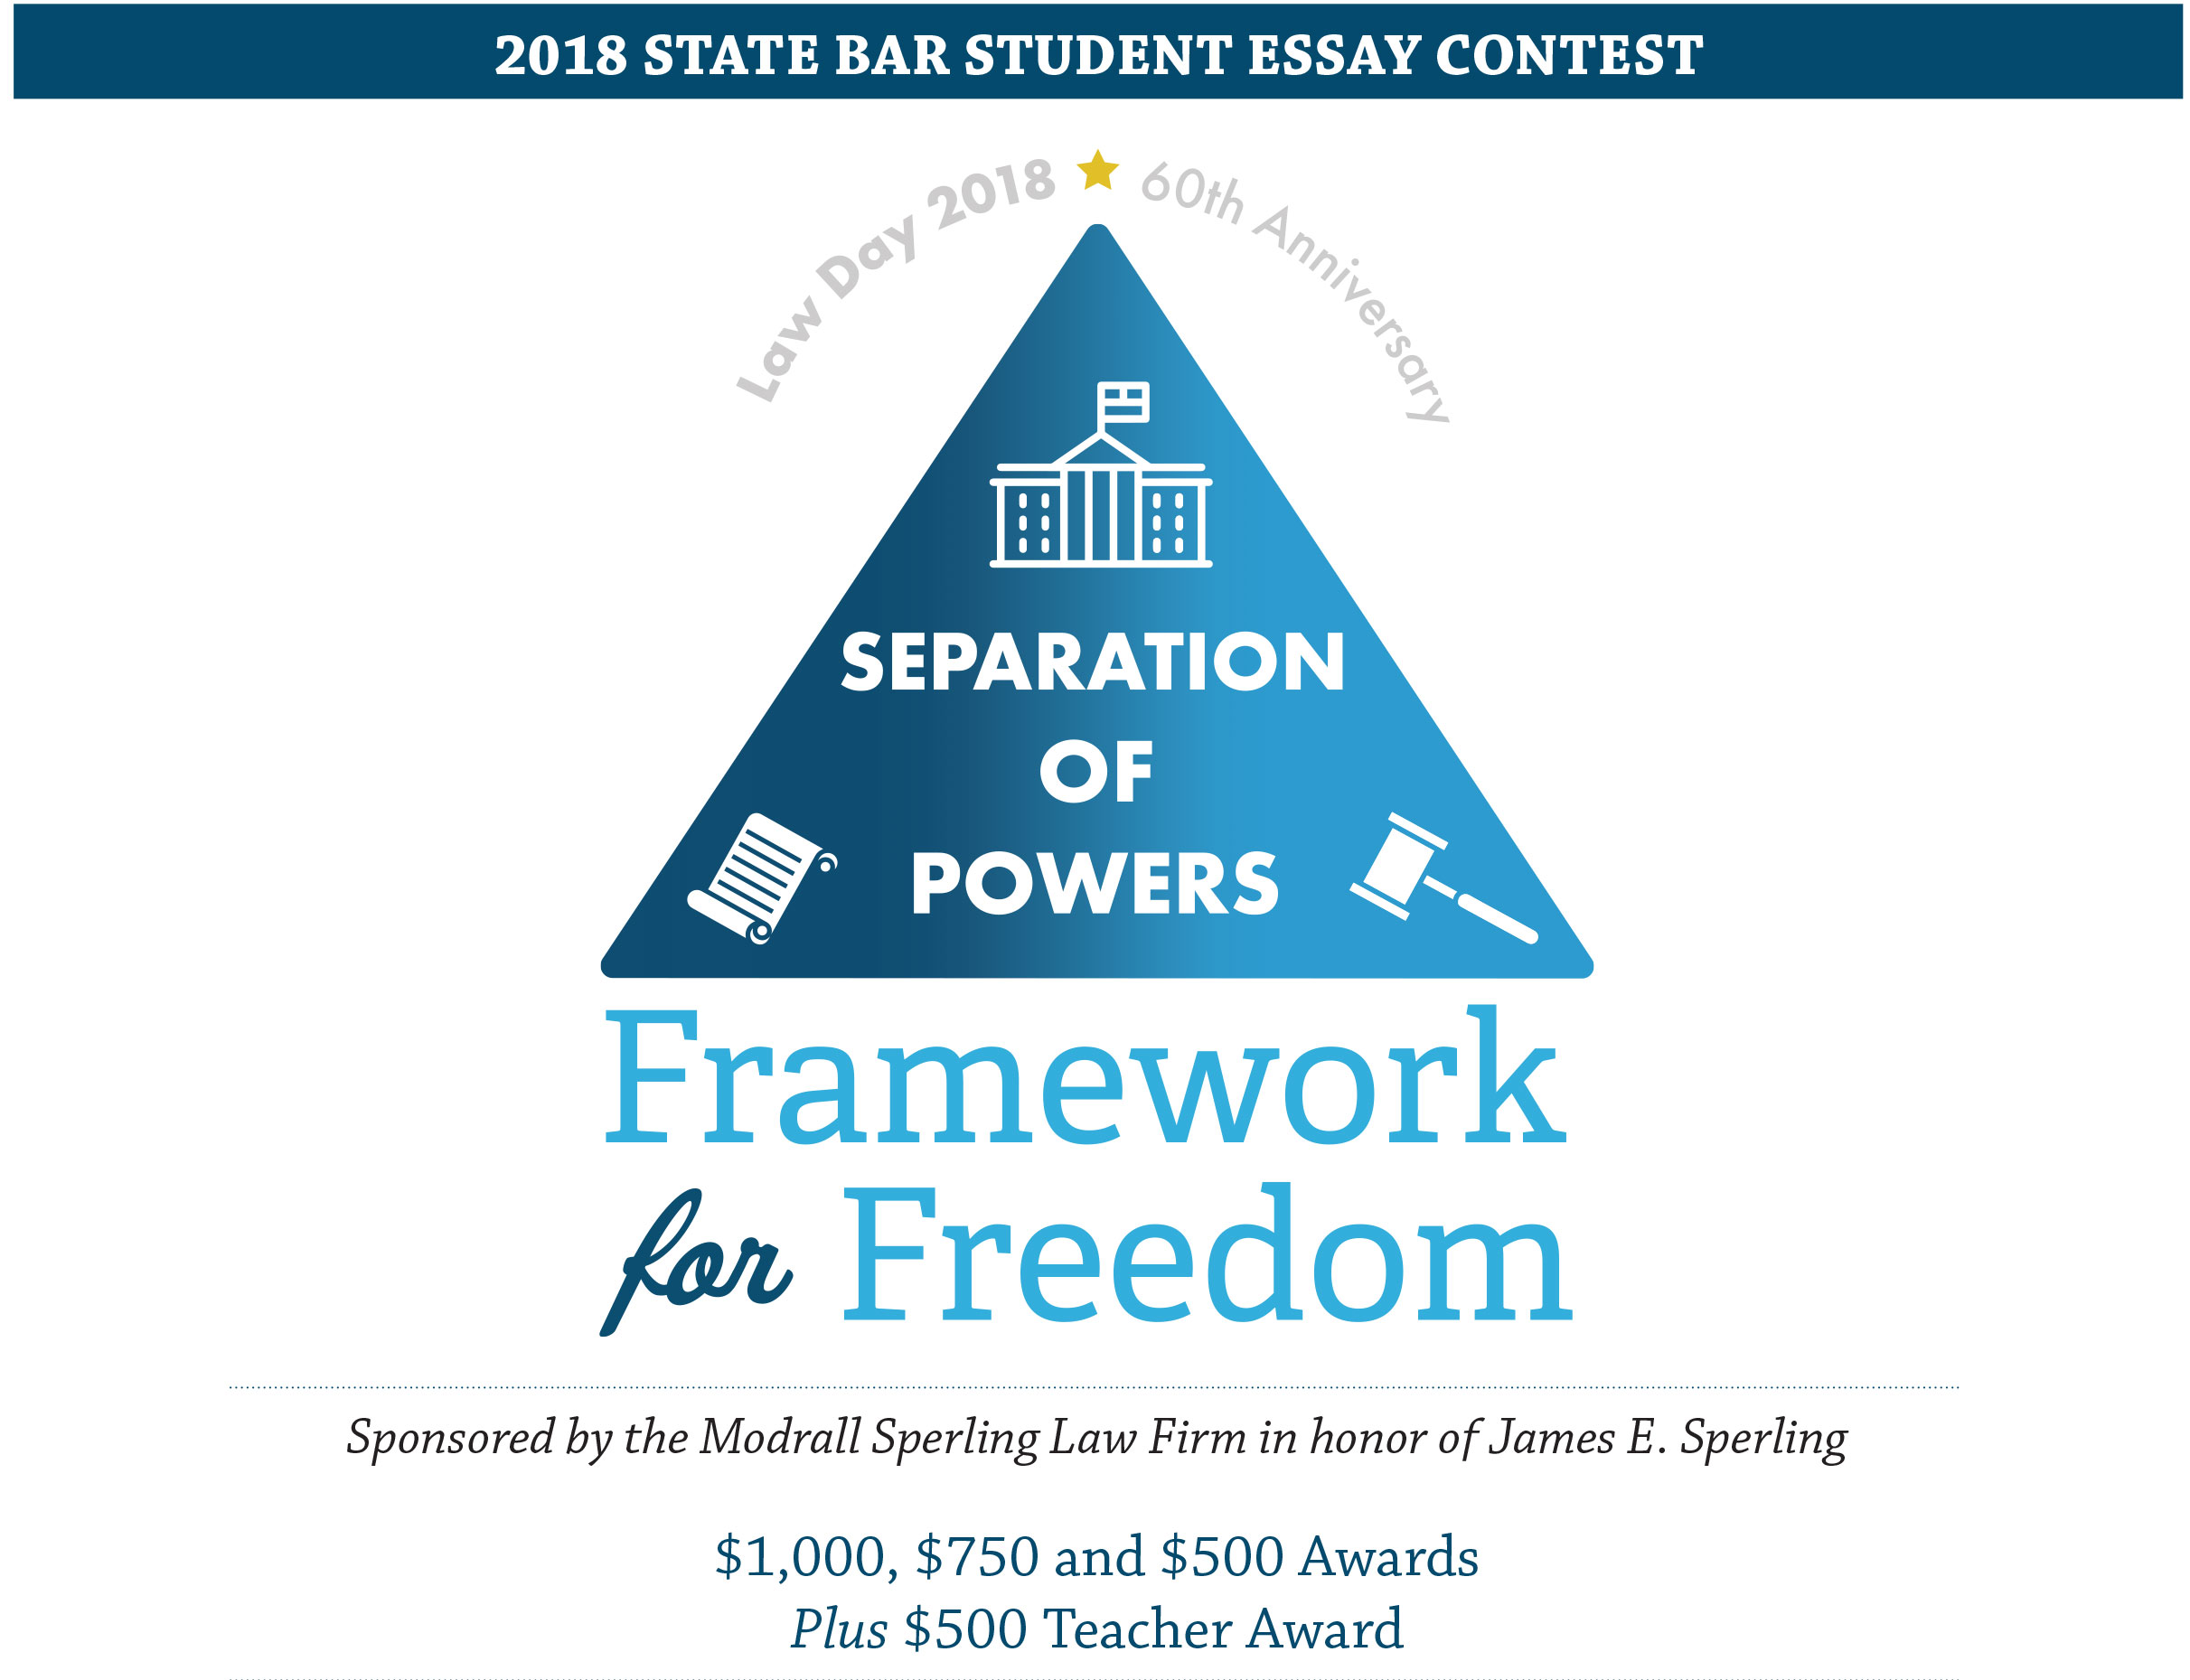 011 Separationofpowers Essay Example High School Fascinating Contests Contest Winners 2019 For Scholarships Full